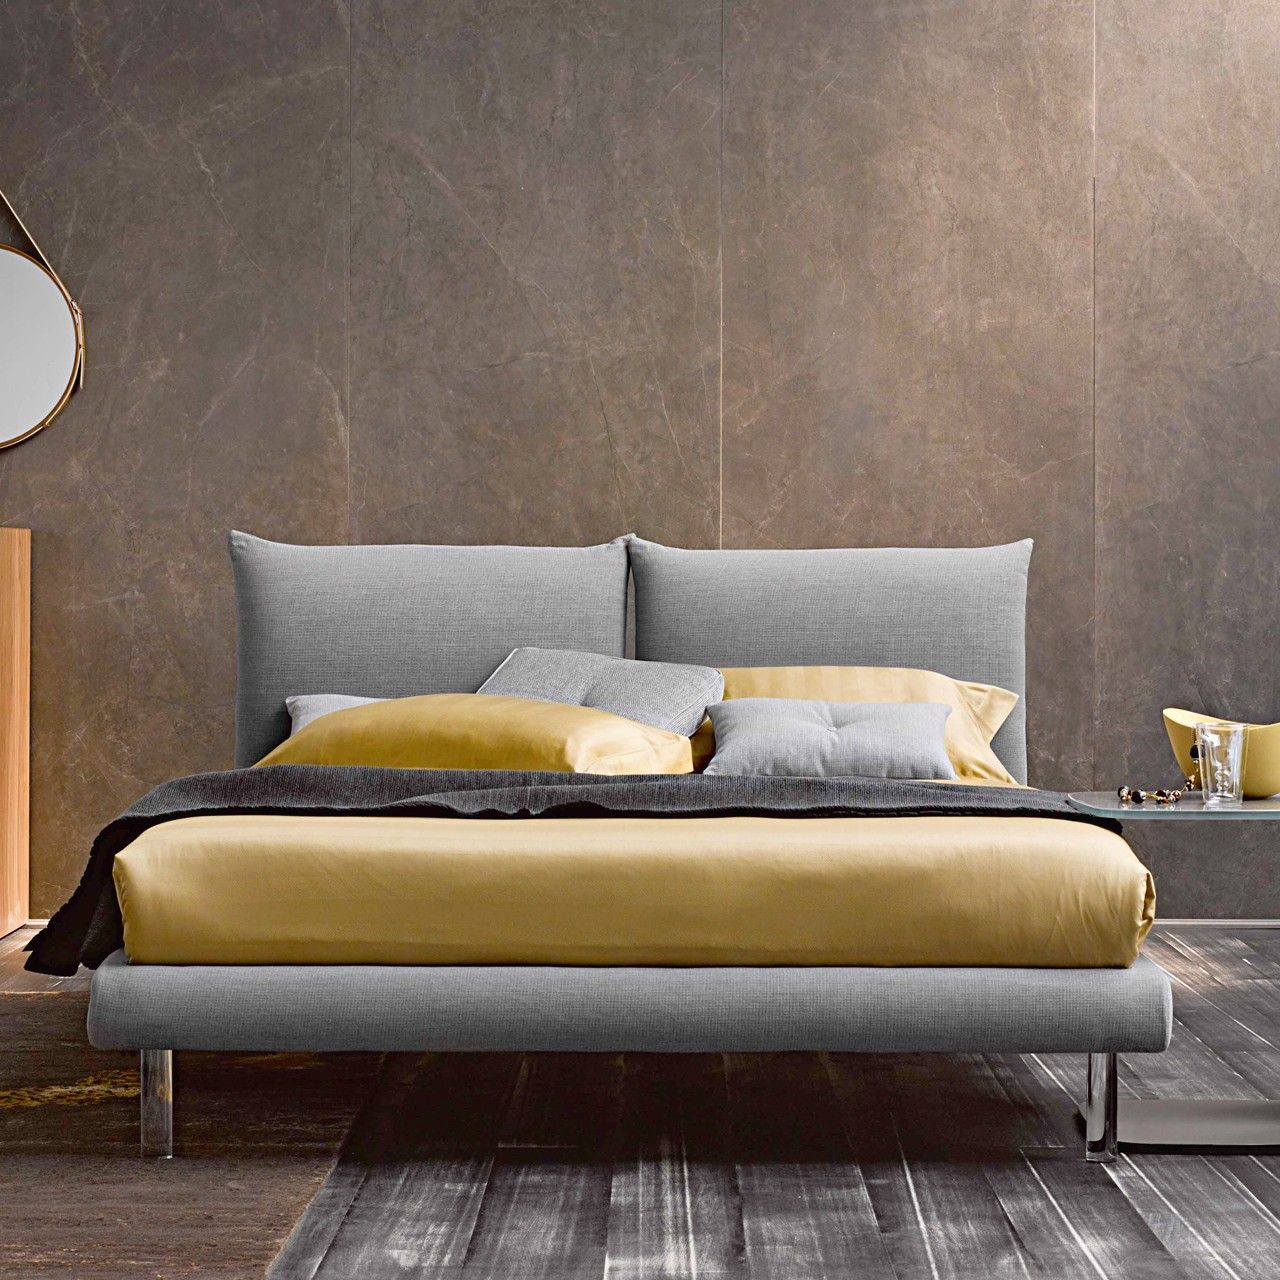 Modern Fixed Double Bed Letto matrimoniale, Idee